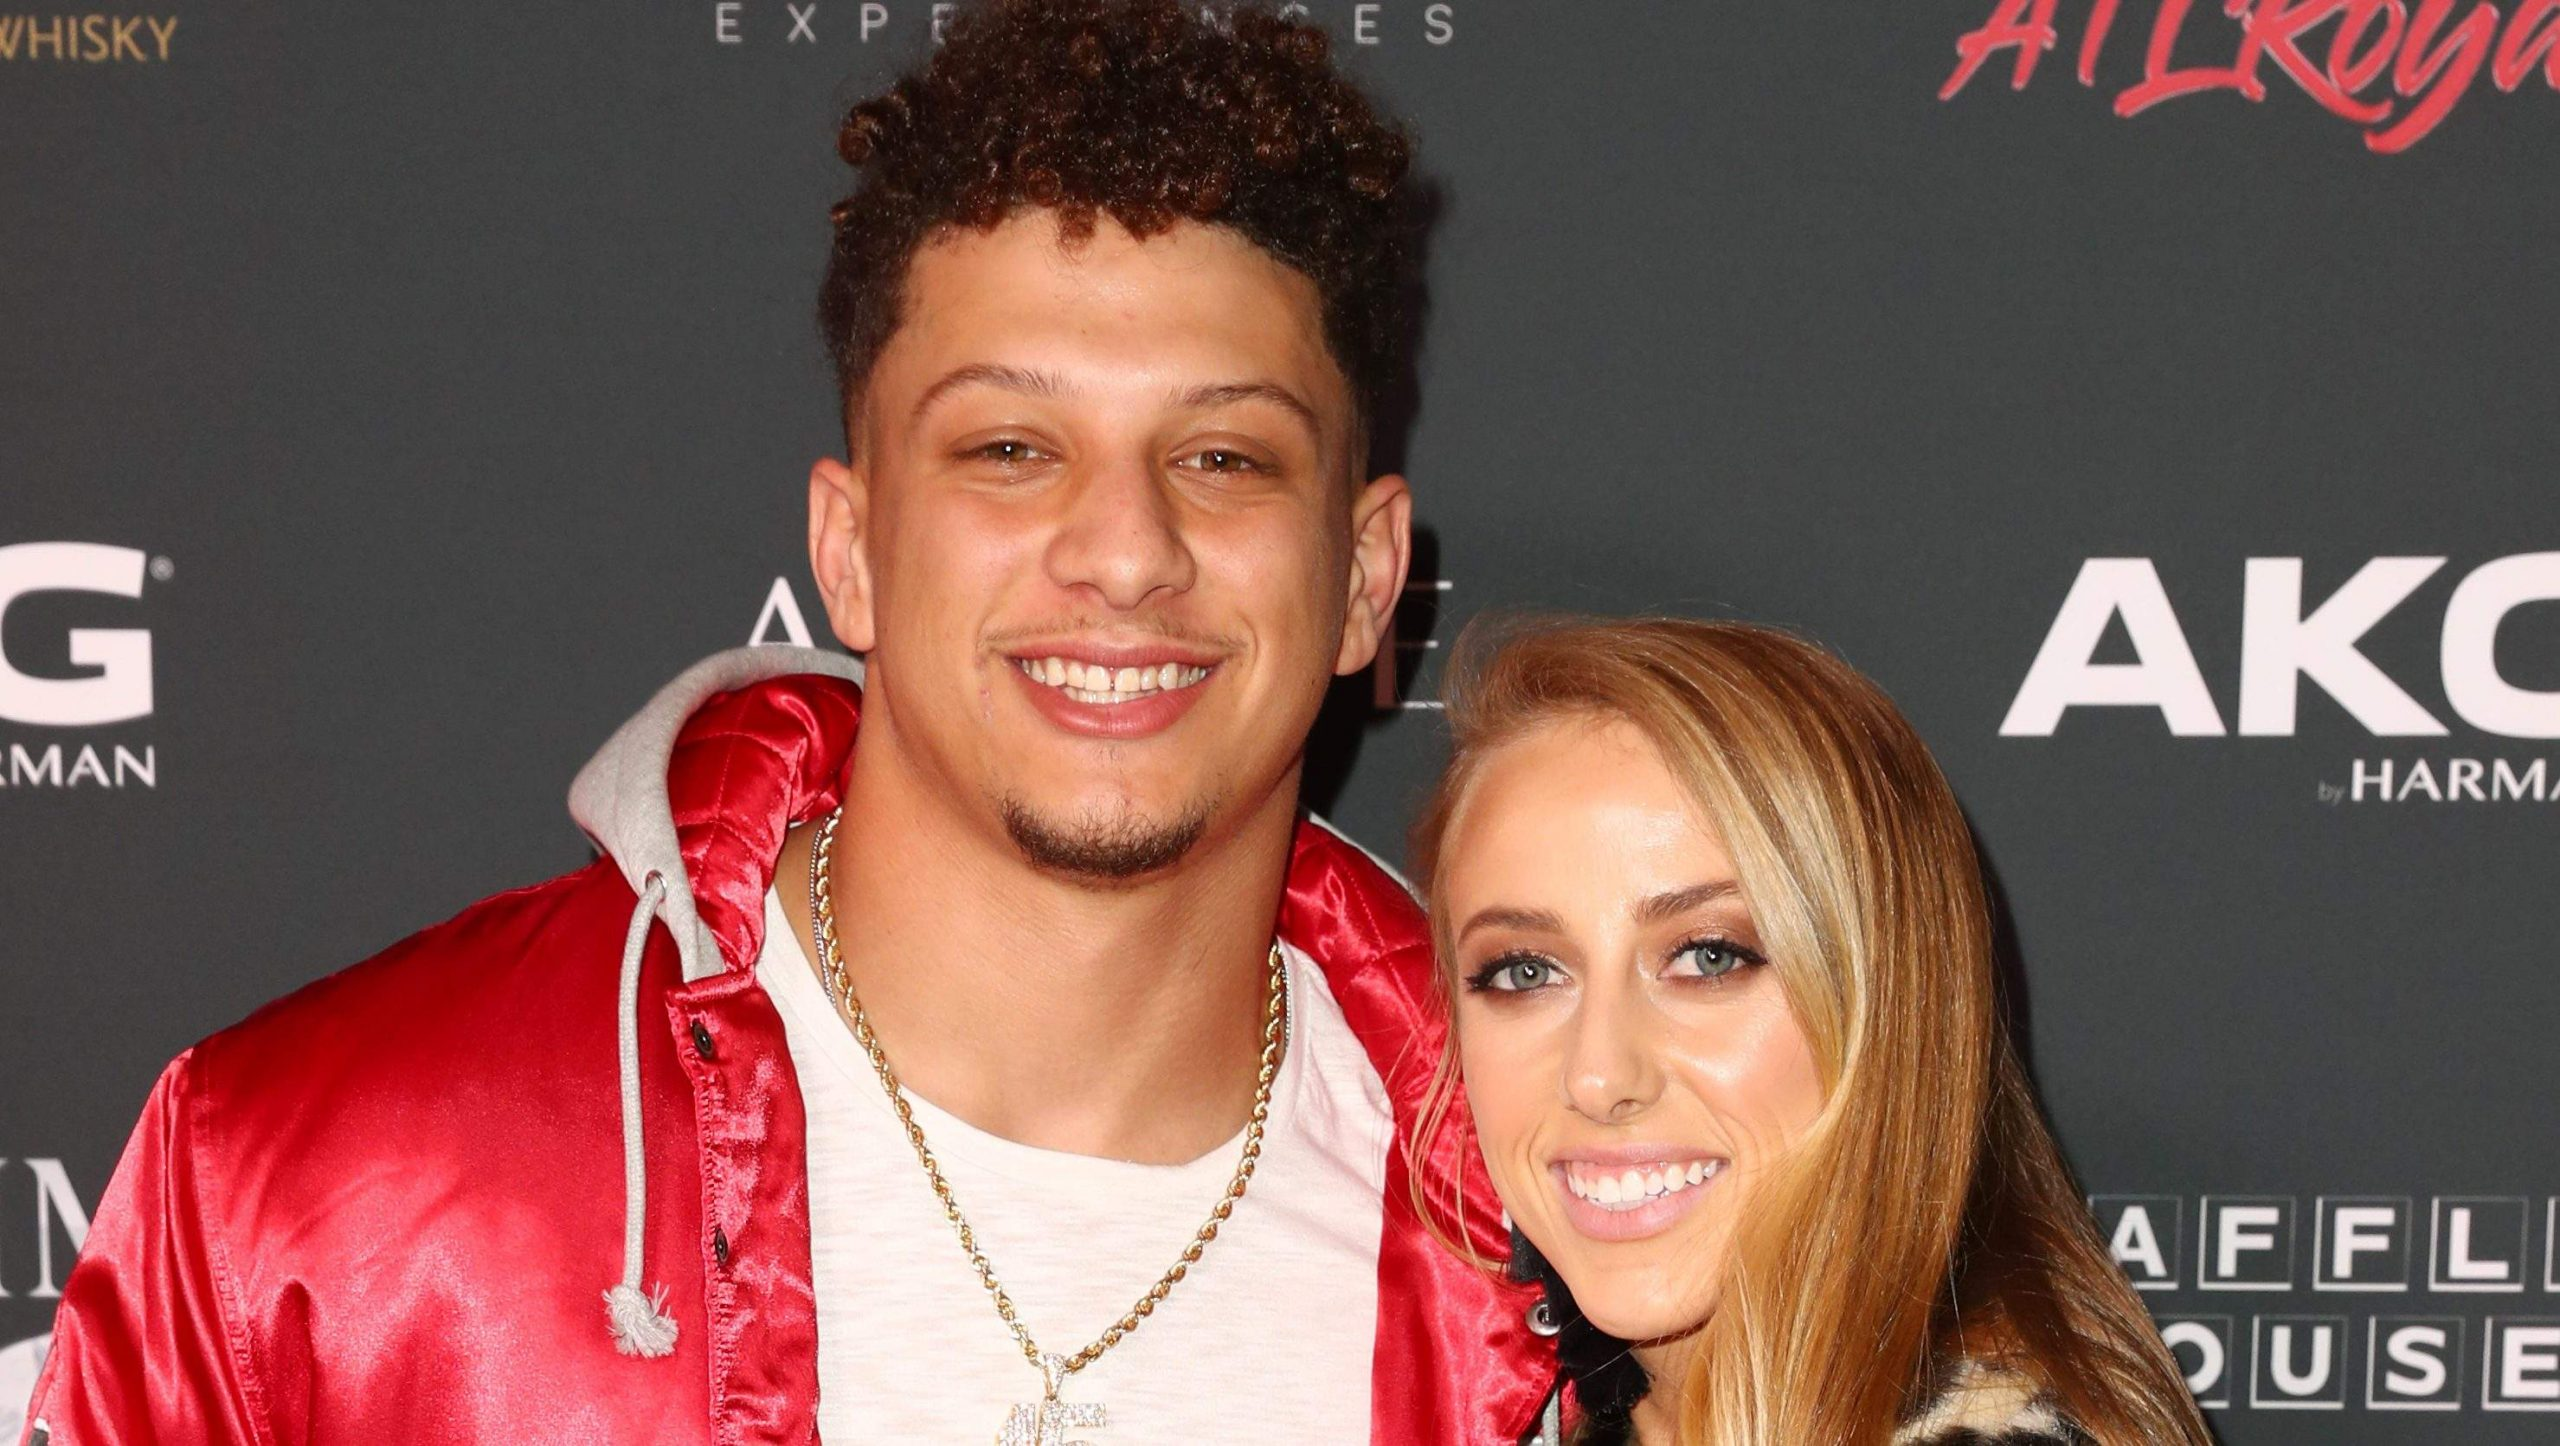 Patrick Mahomes and Brittany Matthews Engaged In Arrowheads Stadium